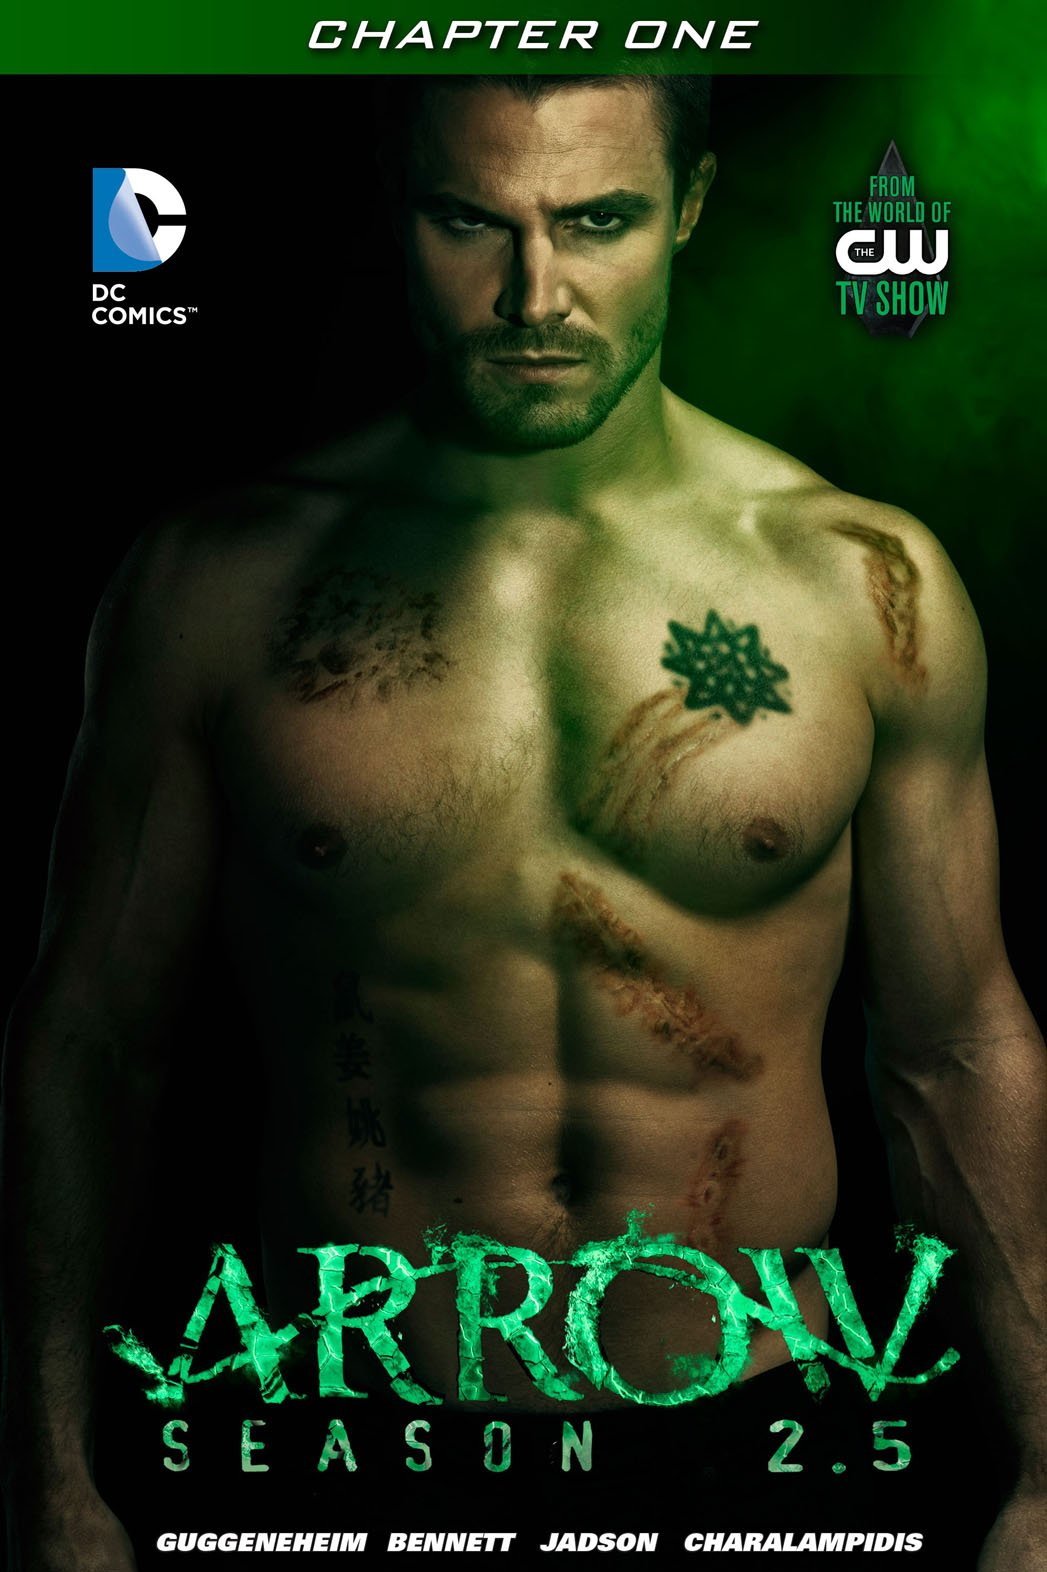 Arrow Season 2.5 #1 - Cover (Final).png